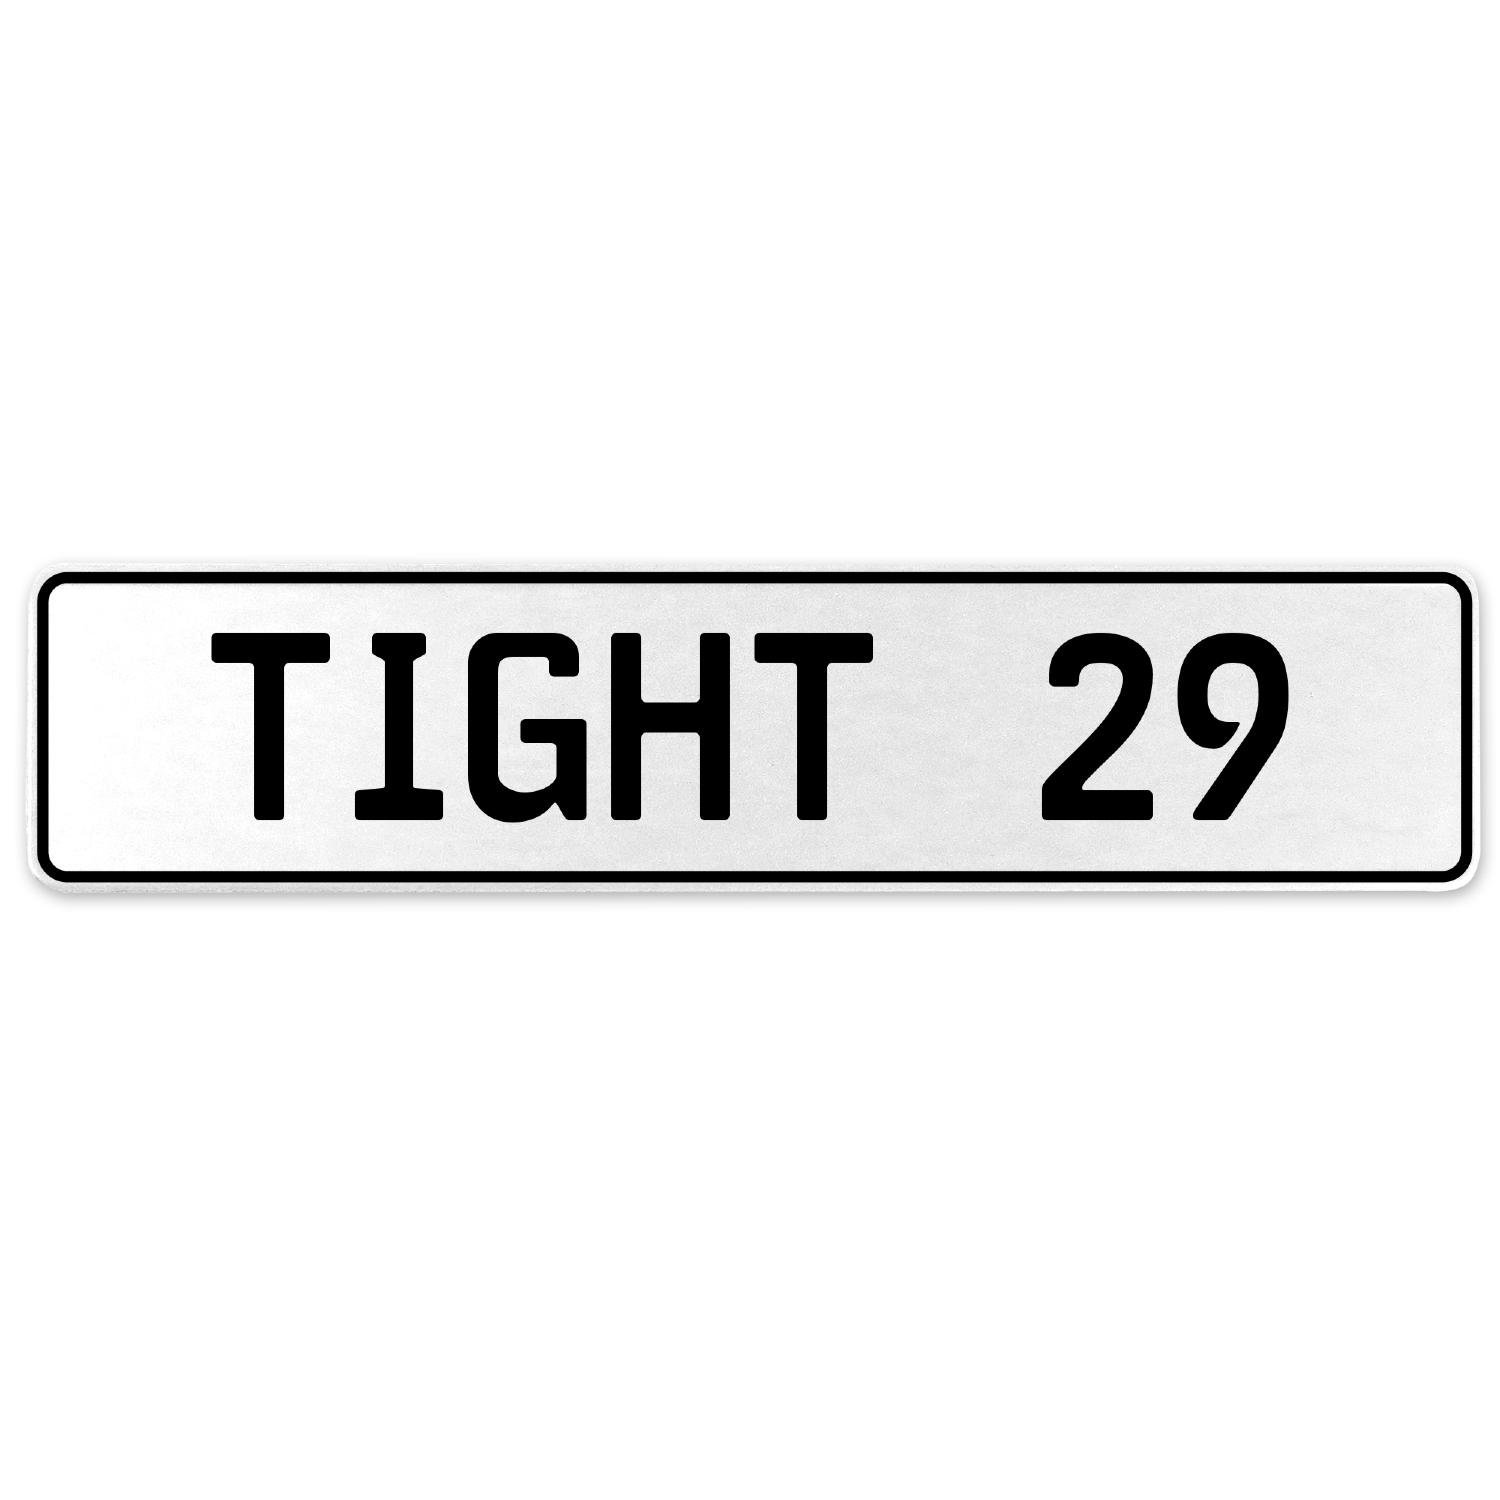 Vintage Parts 554725 Tight 29 White Stamped Aluminum European License Plate